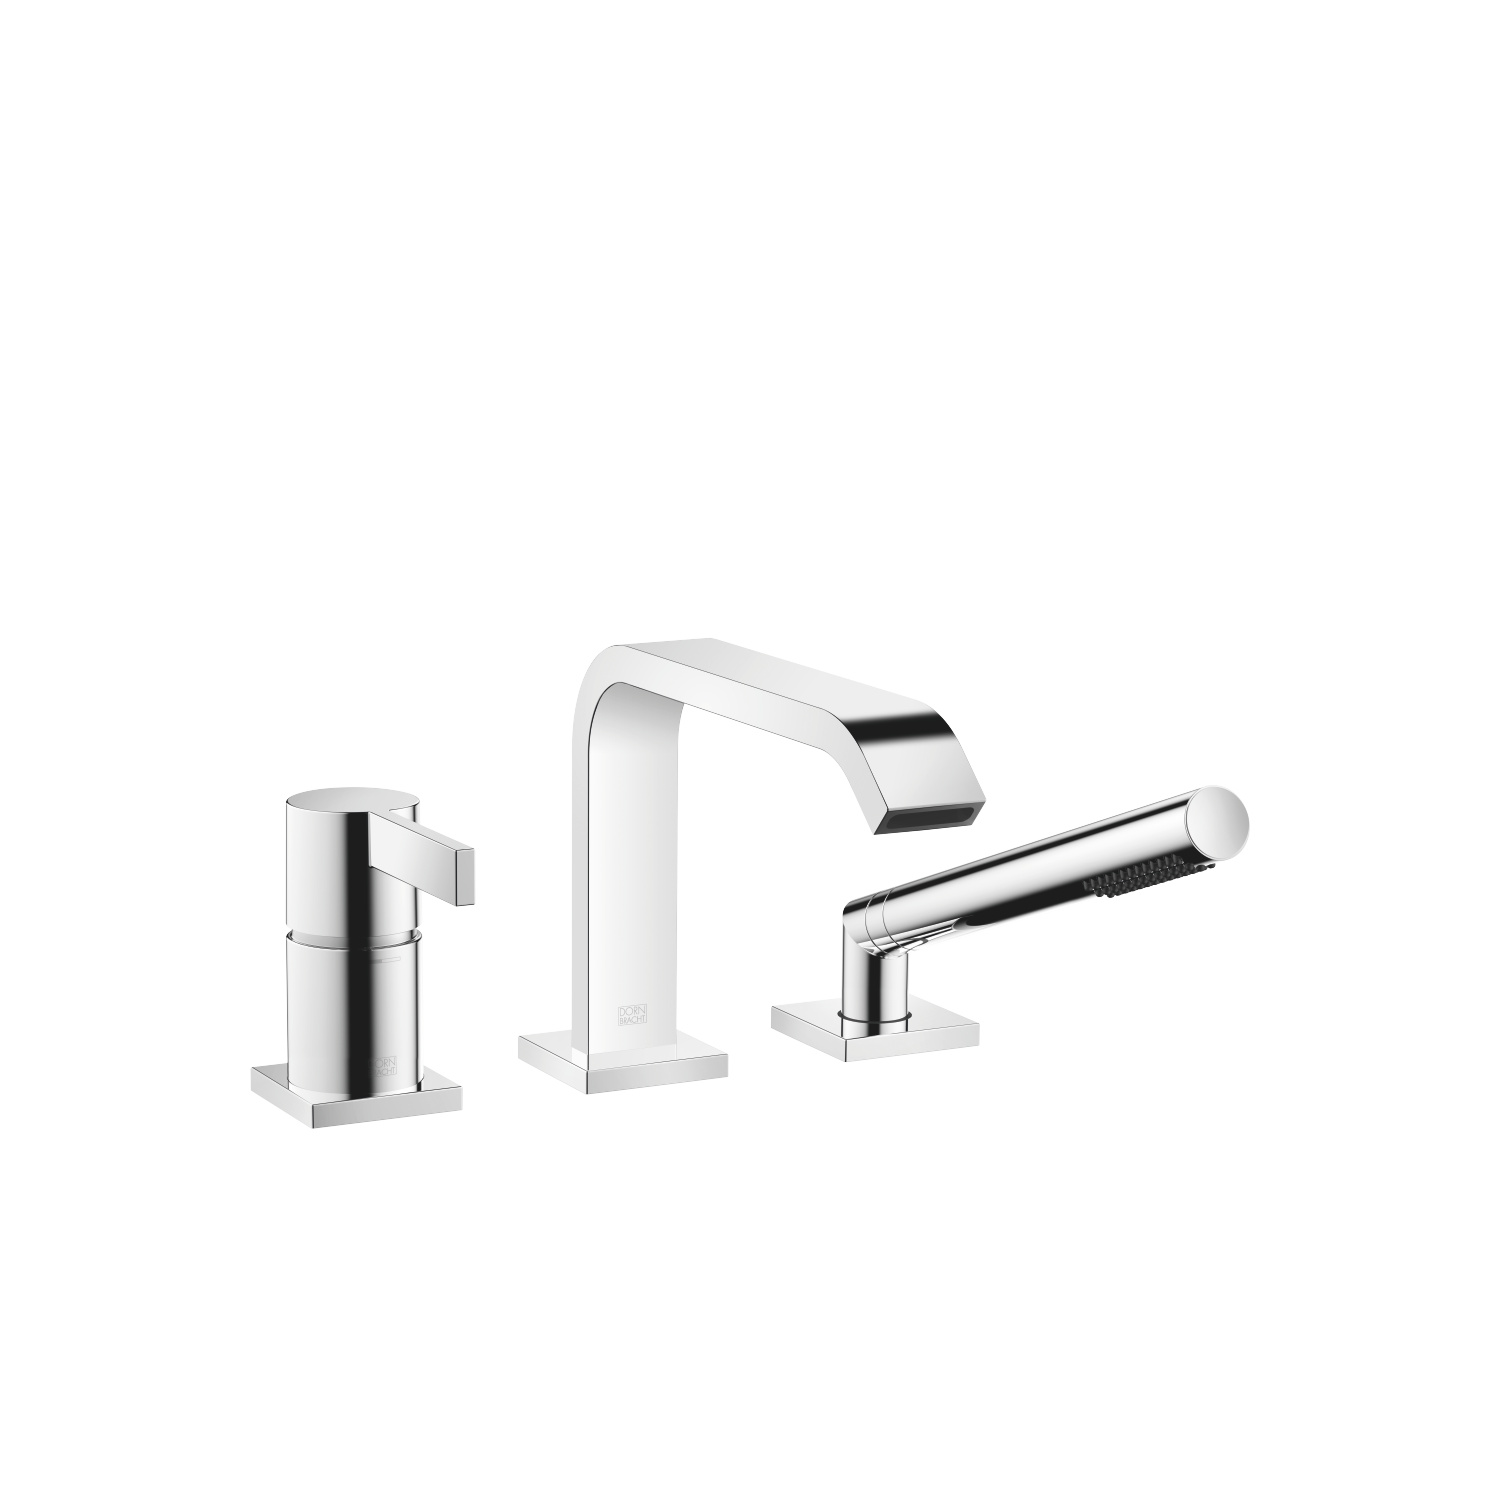 Three-hole single-lever bath mixer for bath rim or tile edge installation - polished chrome - 27 412 670-00